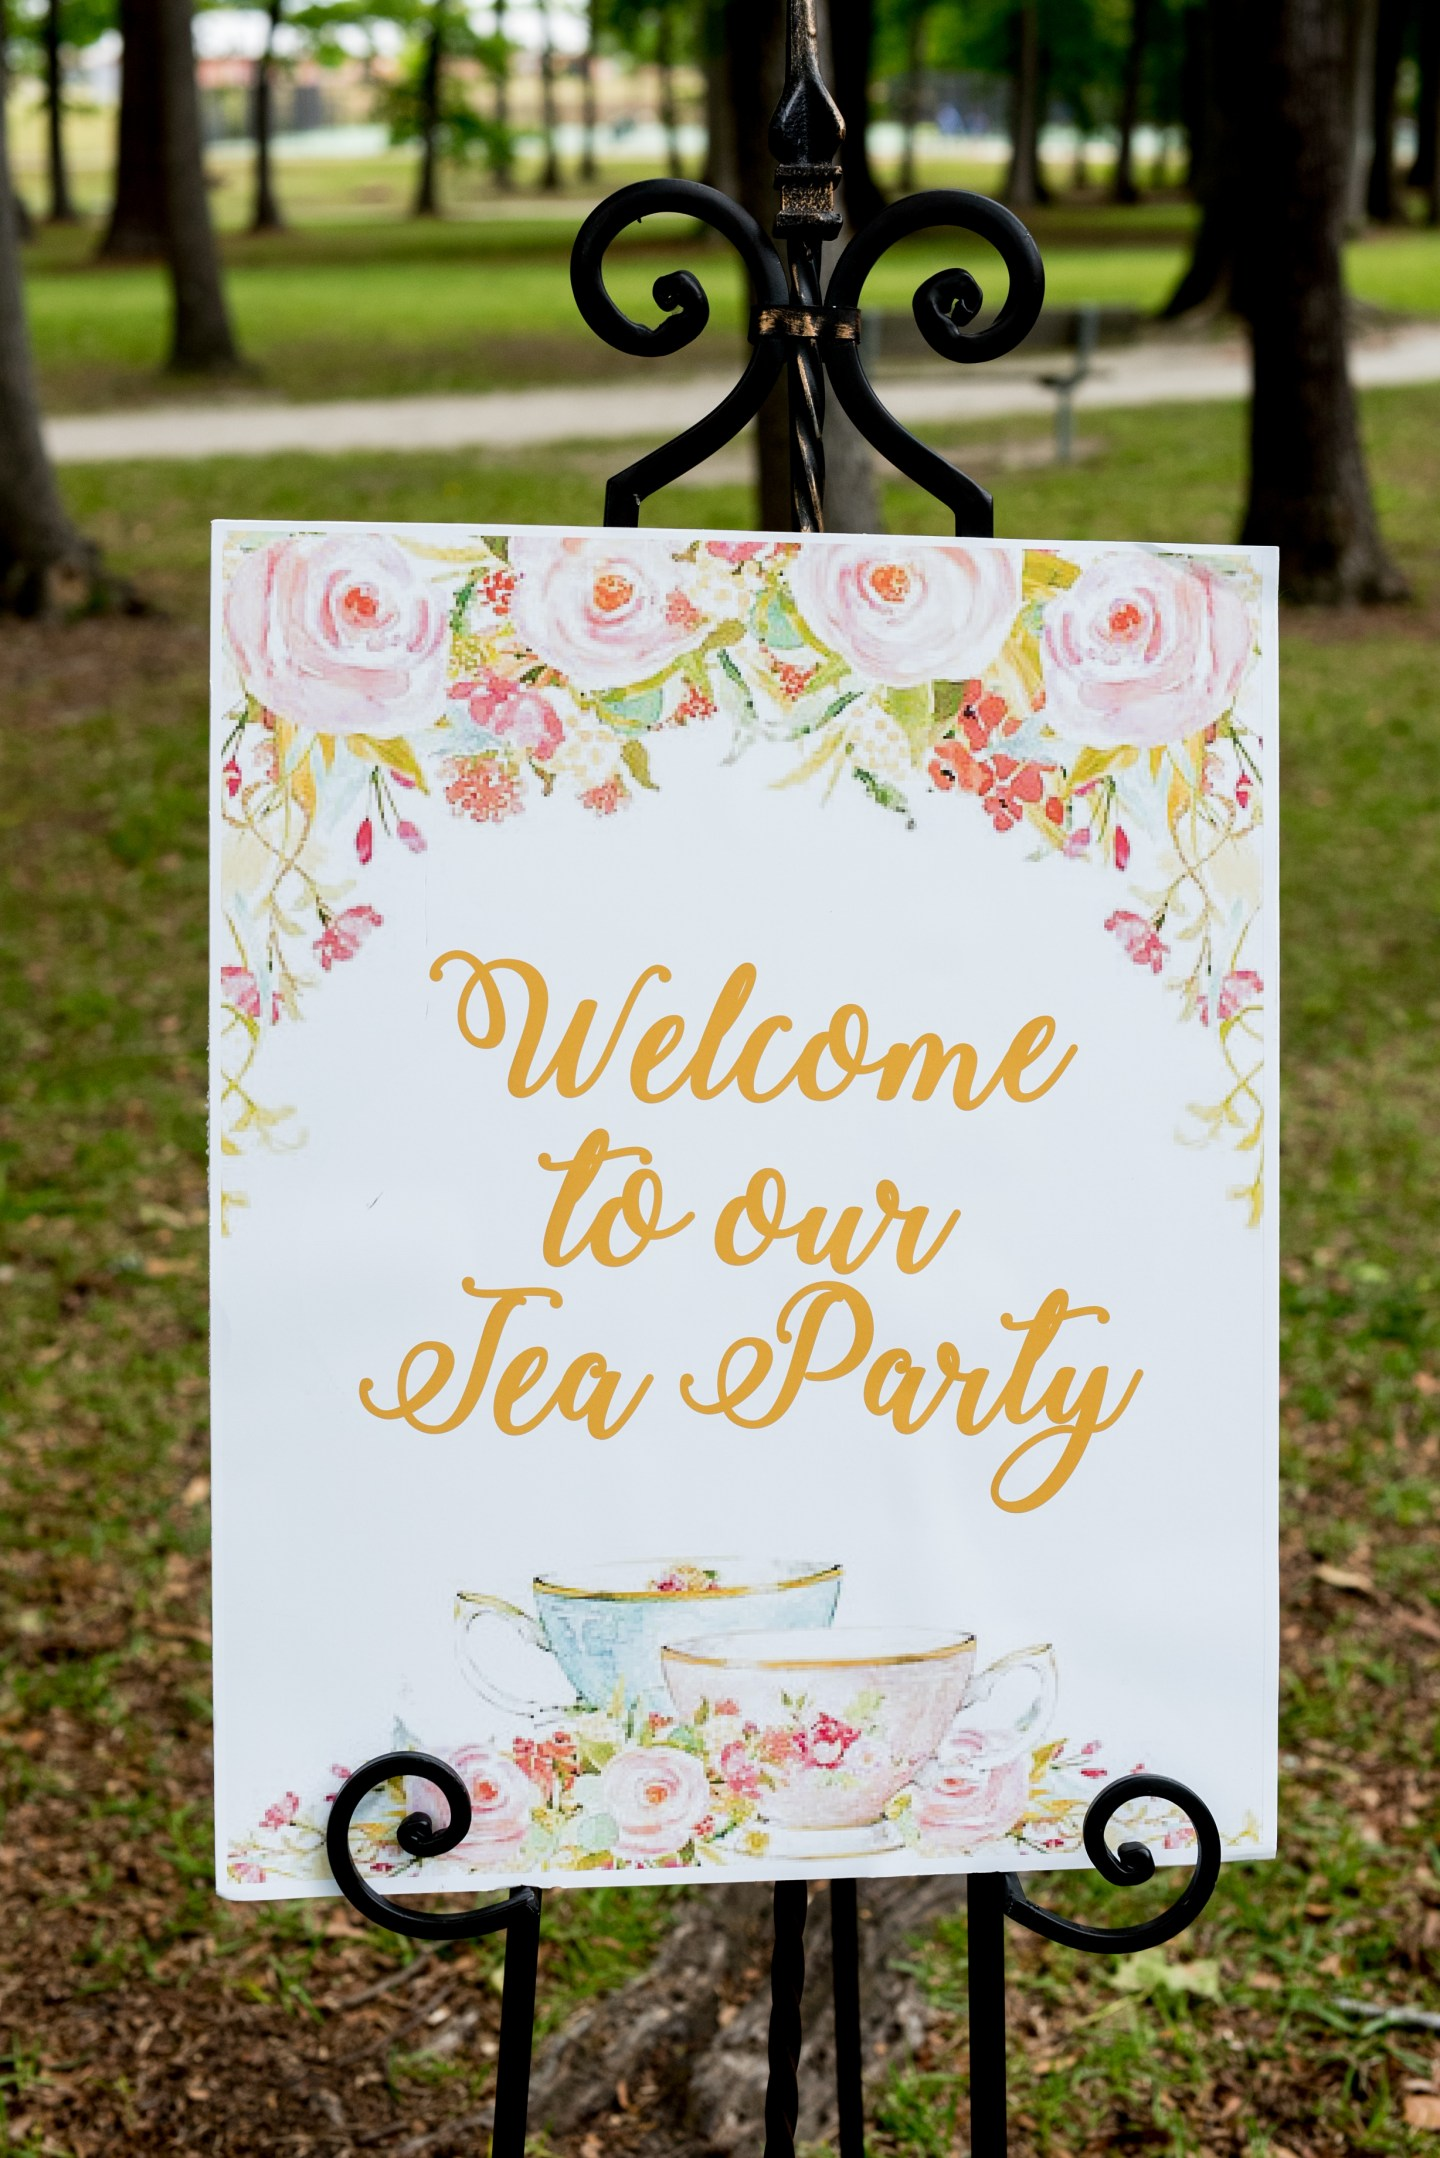 TeaParty-3-1440x2158 Children's Tea Party Inspiration - How to Plan a Child's Party with a Photographer